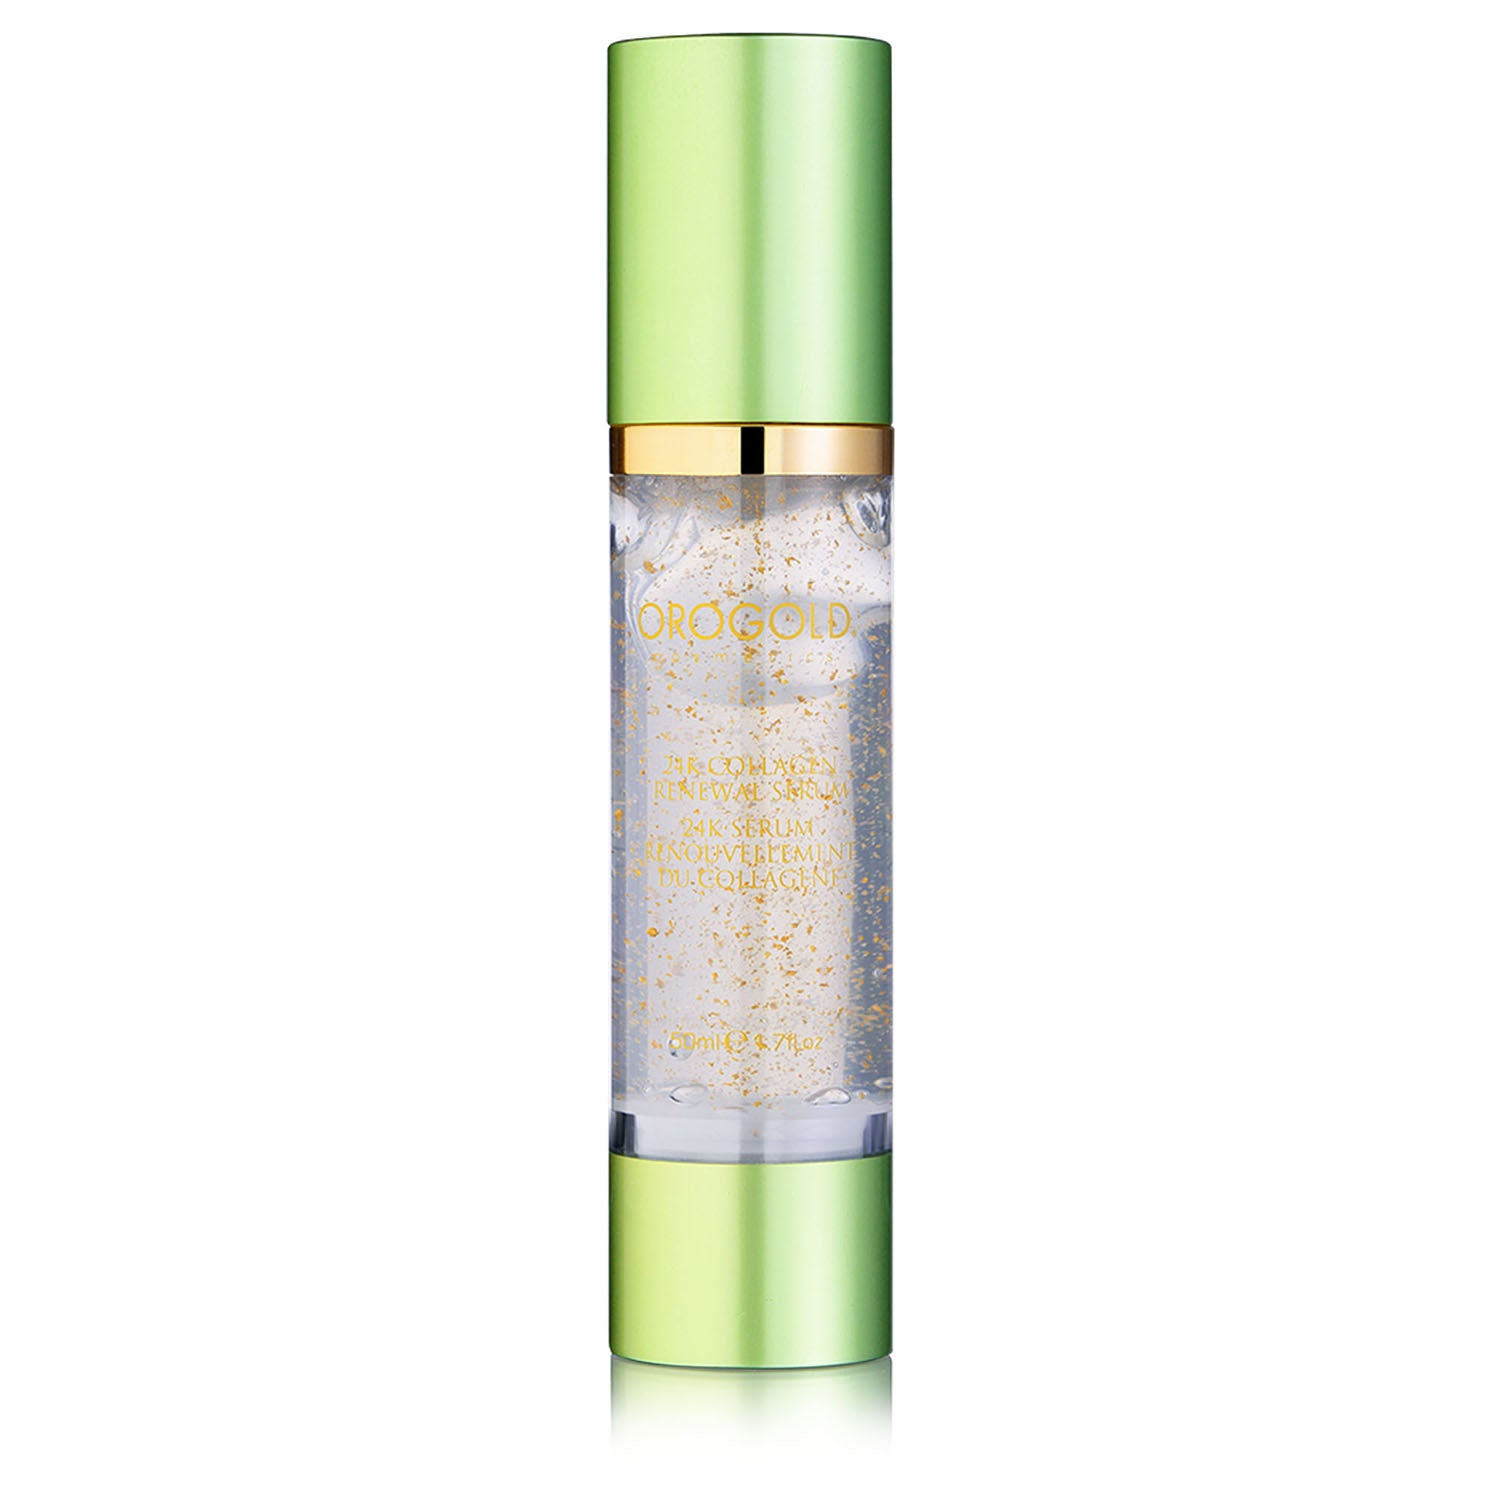 orogold 24k face serum